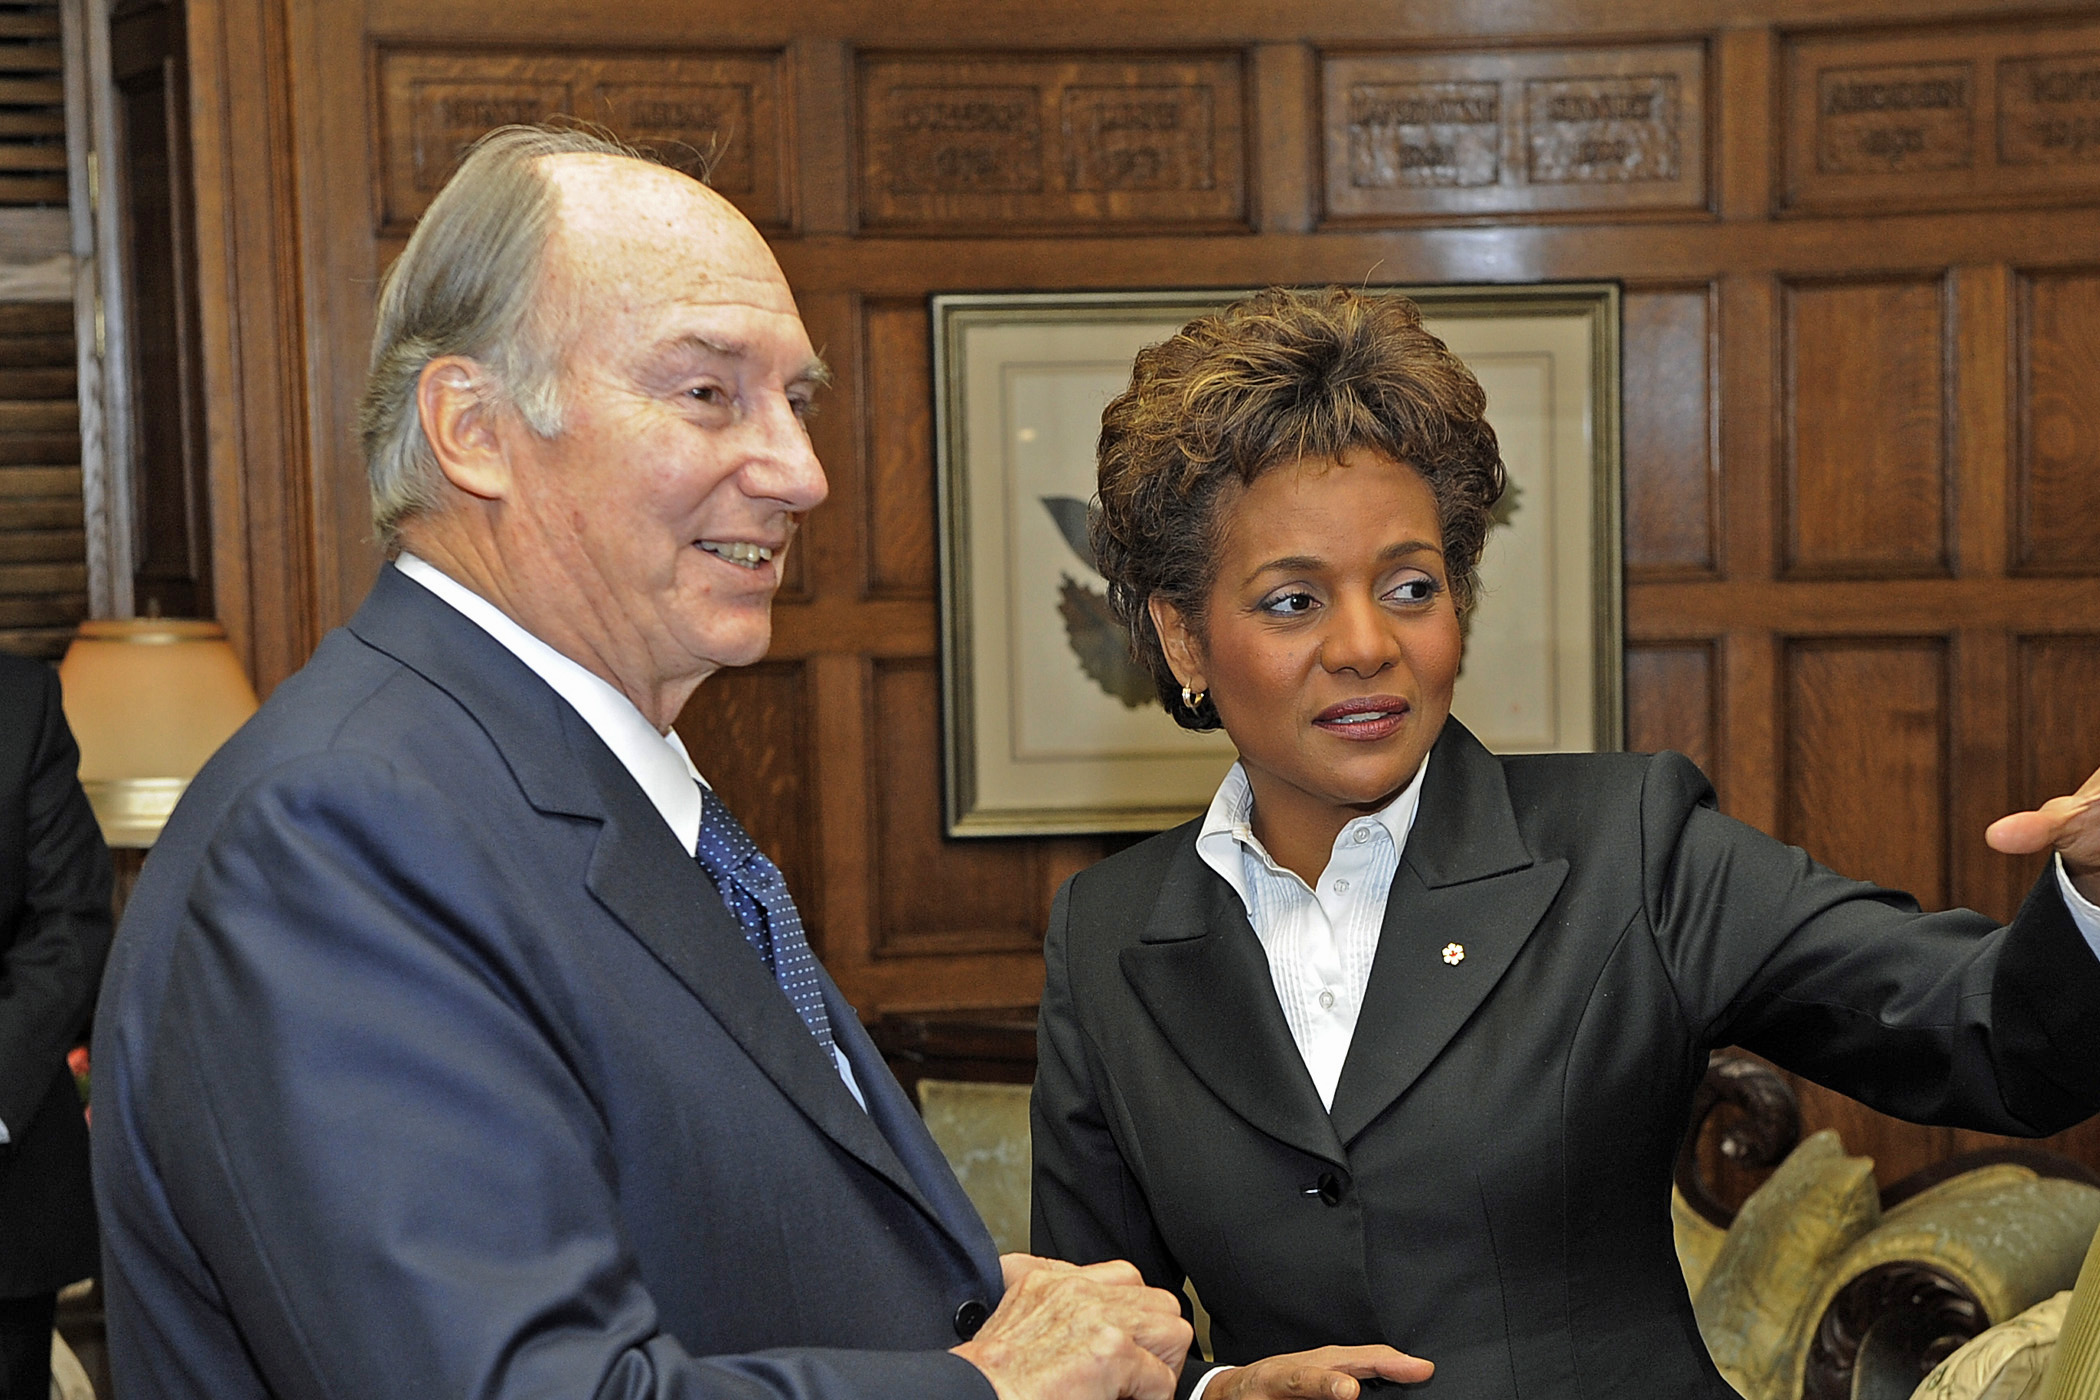 Mawlana Hazar Imam with Her Excellency the Right Honourable Michaëlle Jean, Governor General of Canada, at Rideau Hall. Photo: Gary Otte